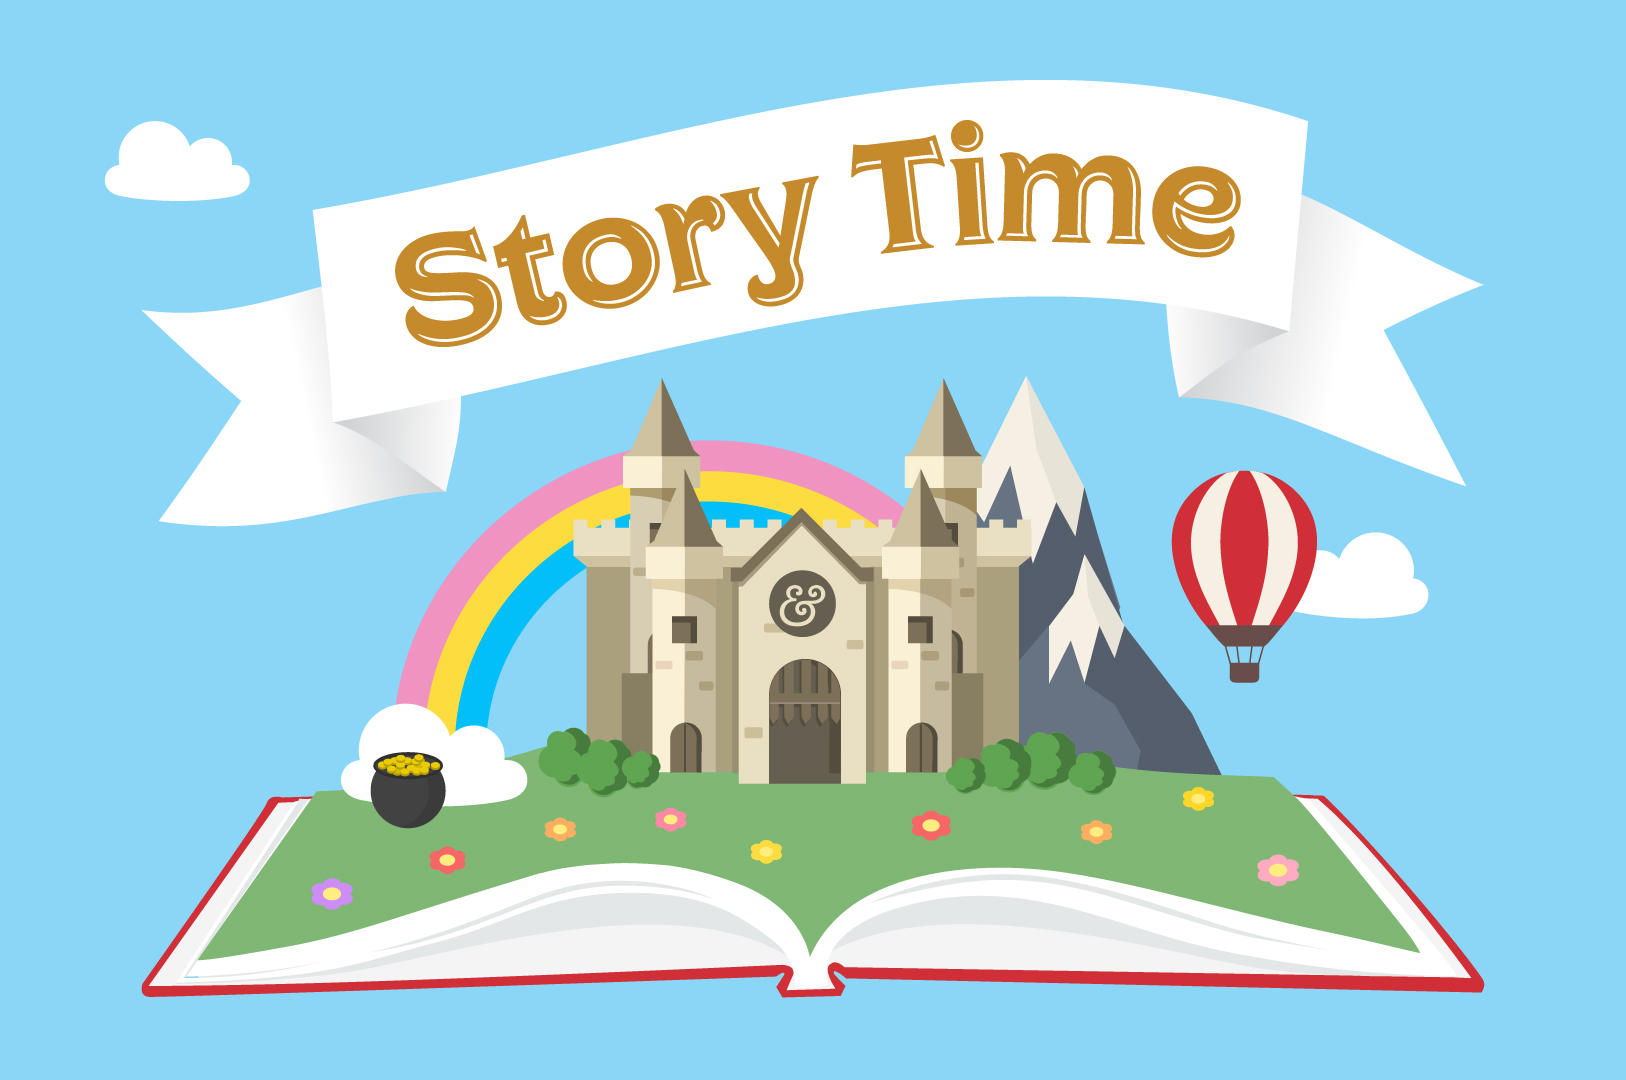 Storytime open book with castle